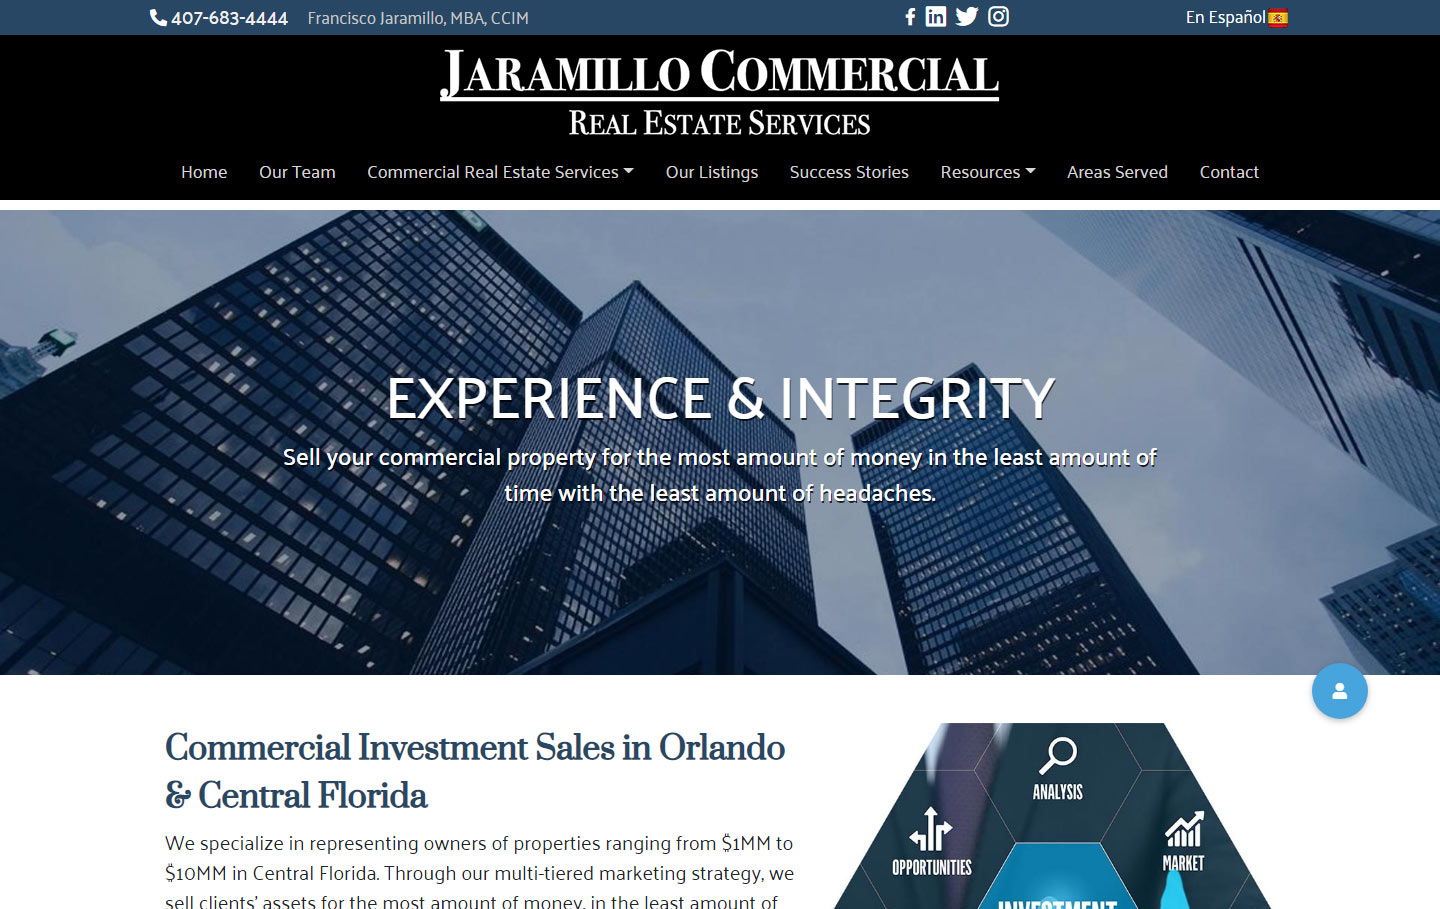 Jaramillo Commercial Real Estate Services